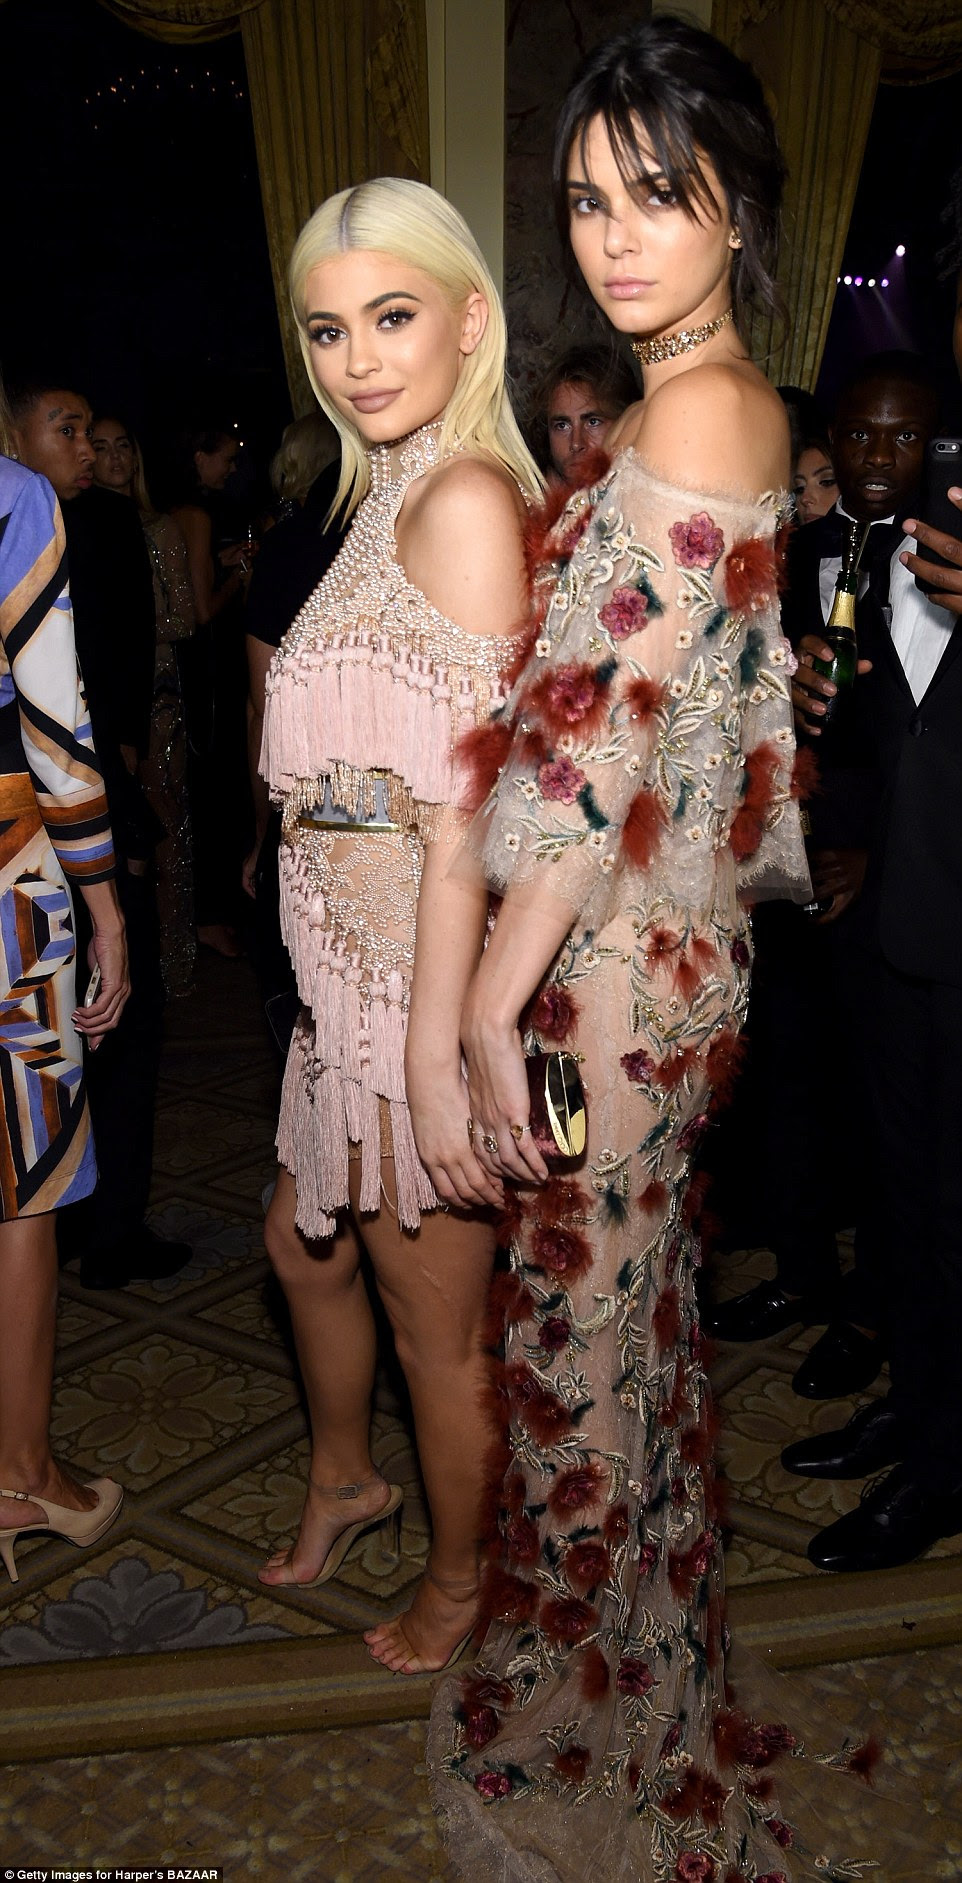 Close sisters: Kylie found her older sister, Kendall Jenner, and the pair held hands as they posed for a photo